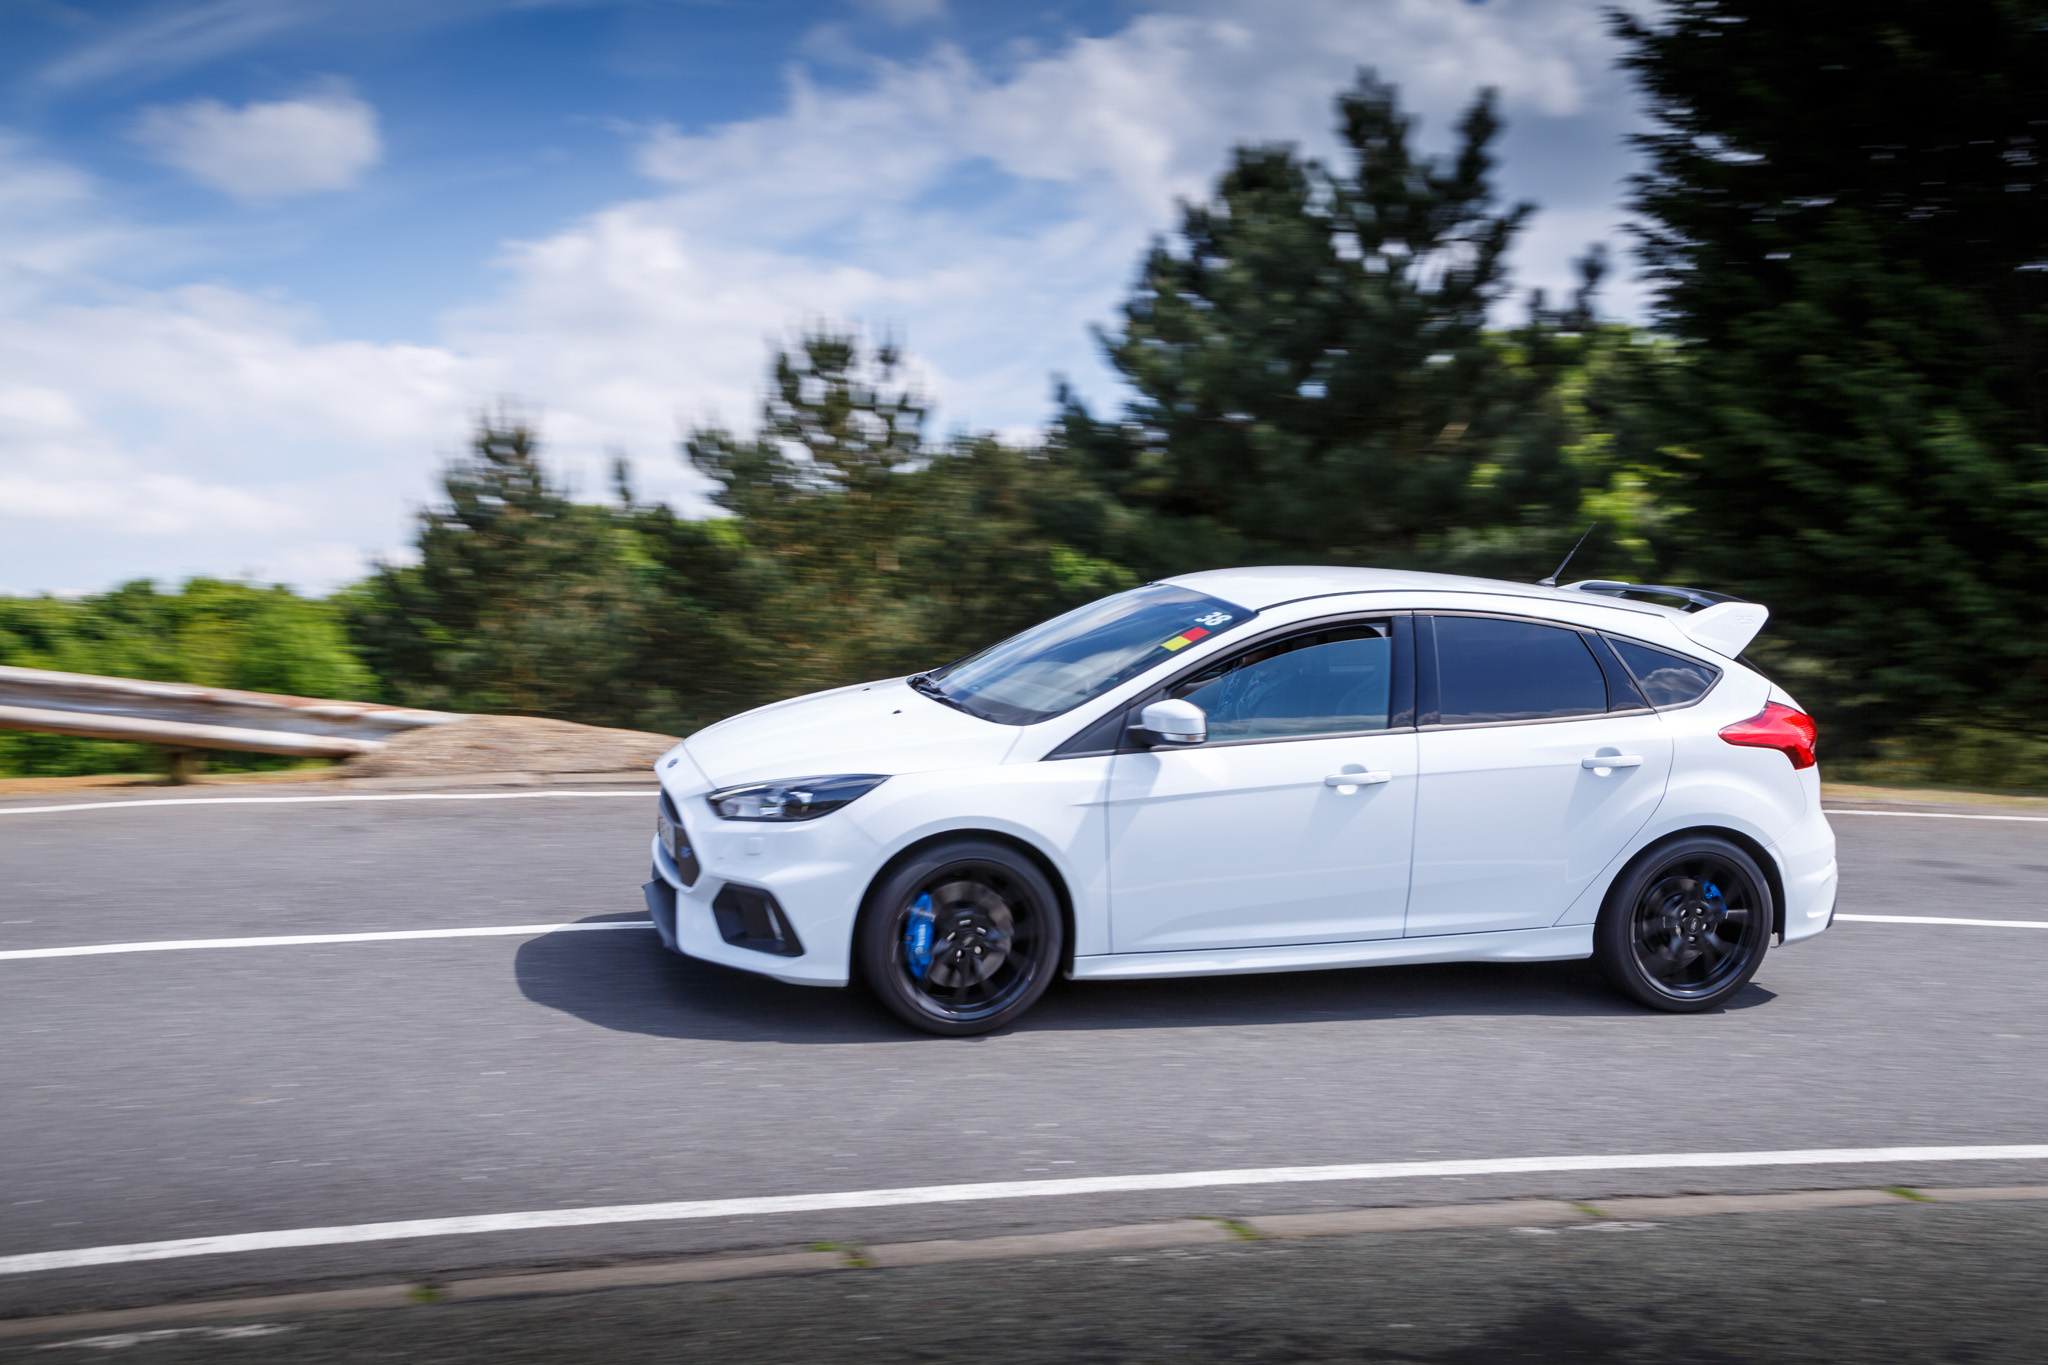 Focus Rs Hp >> 2016 Ford Focus RS Review